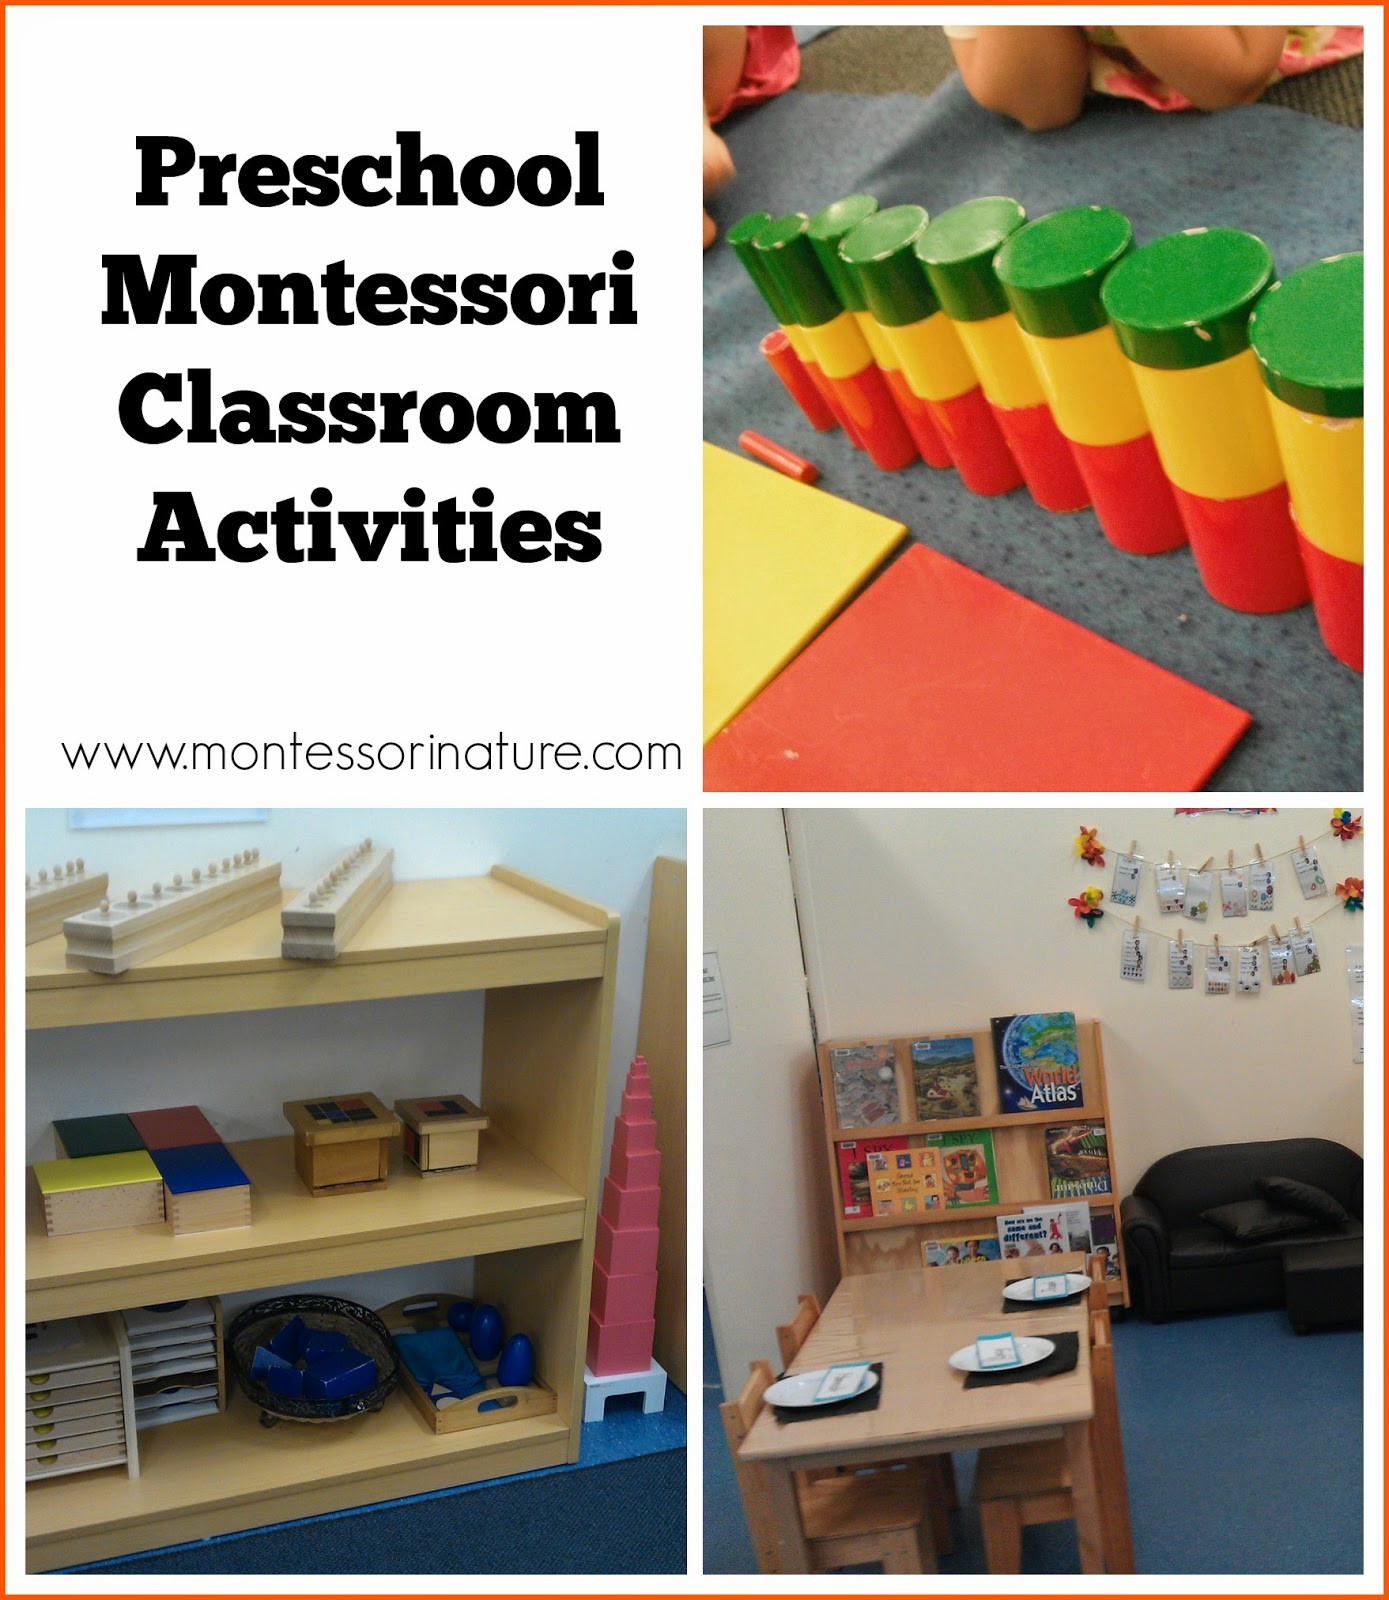 Classroom Ideas And Activities : Preschool montessori classroom activities nature